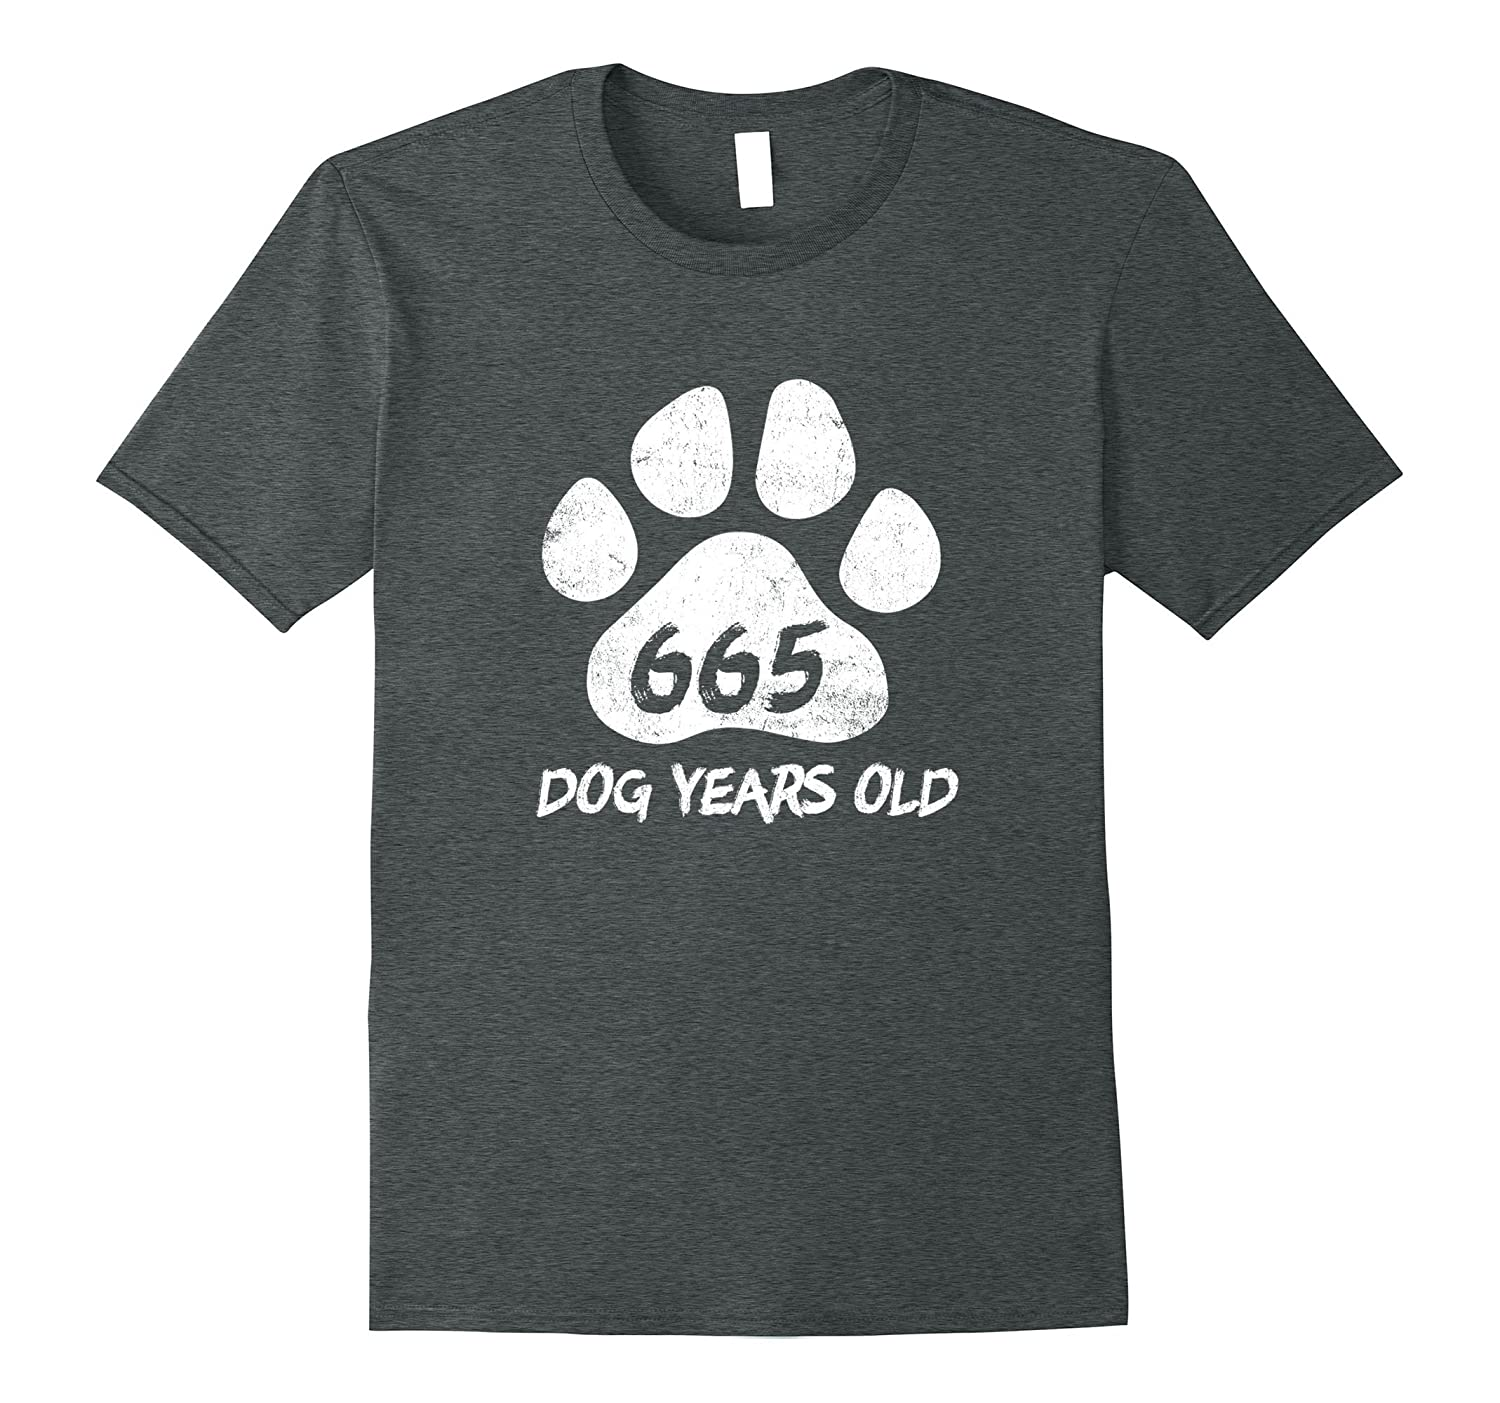 665 Dog Years Old Funny 95th Birthday T-Shirt Novelty Gift-PL